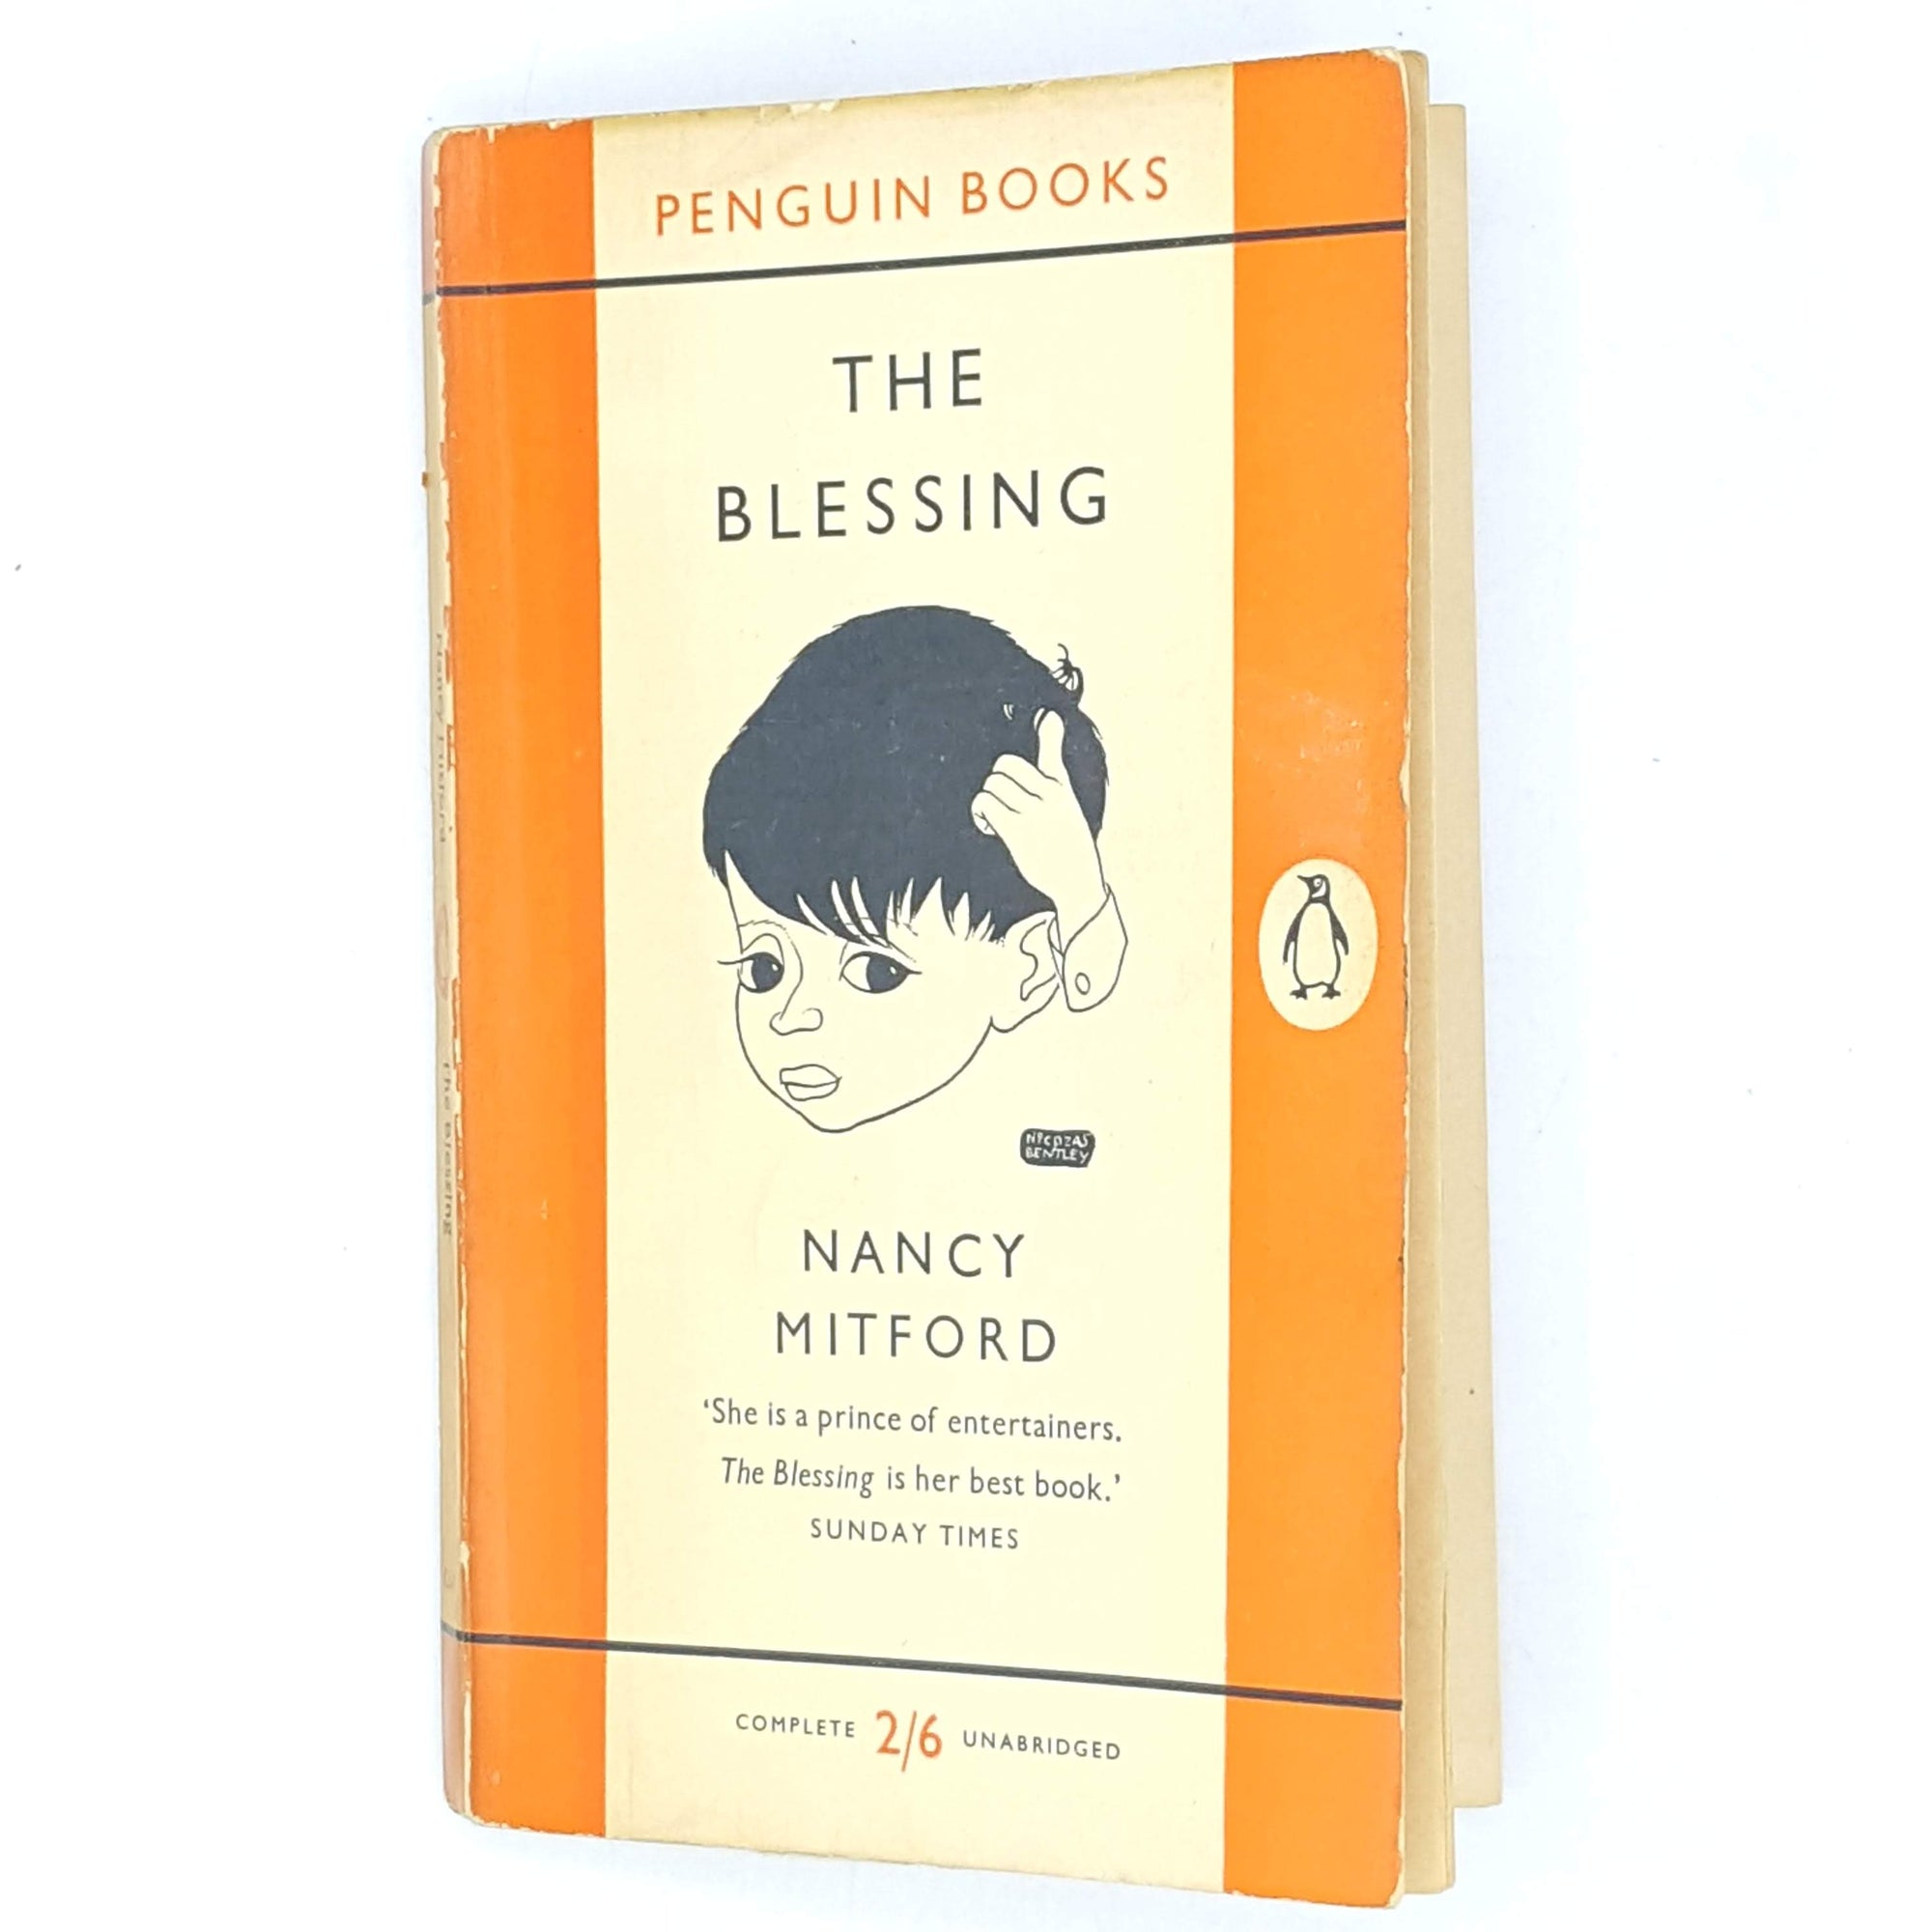 The Blessing by Nancy Mitford 1957